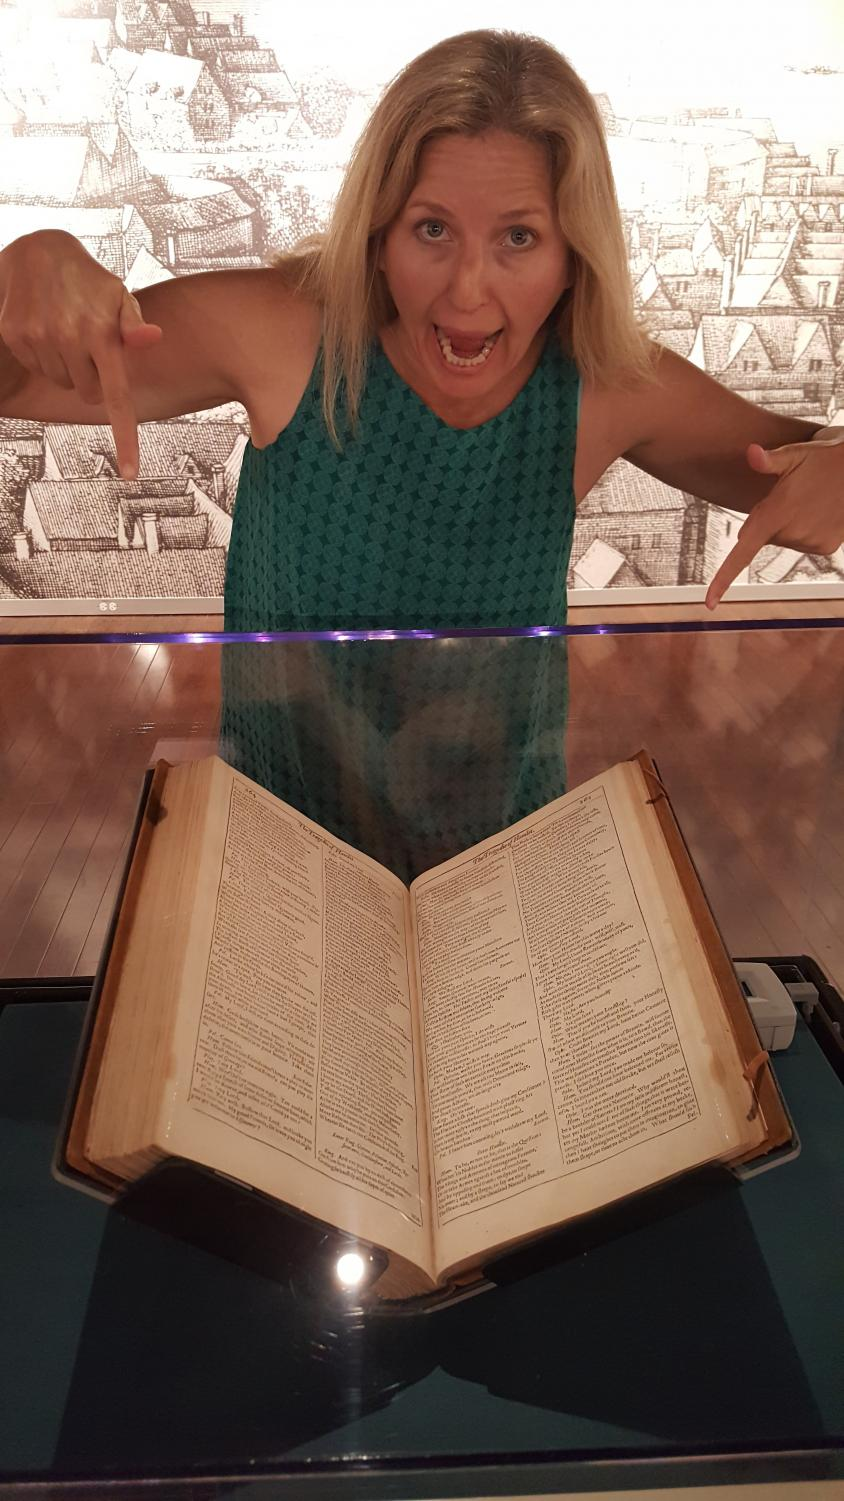 Professor Cynthia Headley with William Shakespeare's first folio/manuscript at the San Diego Library